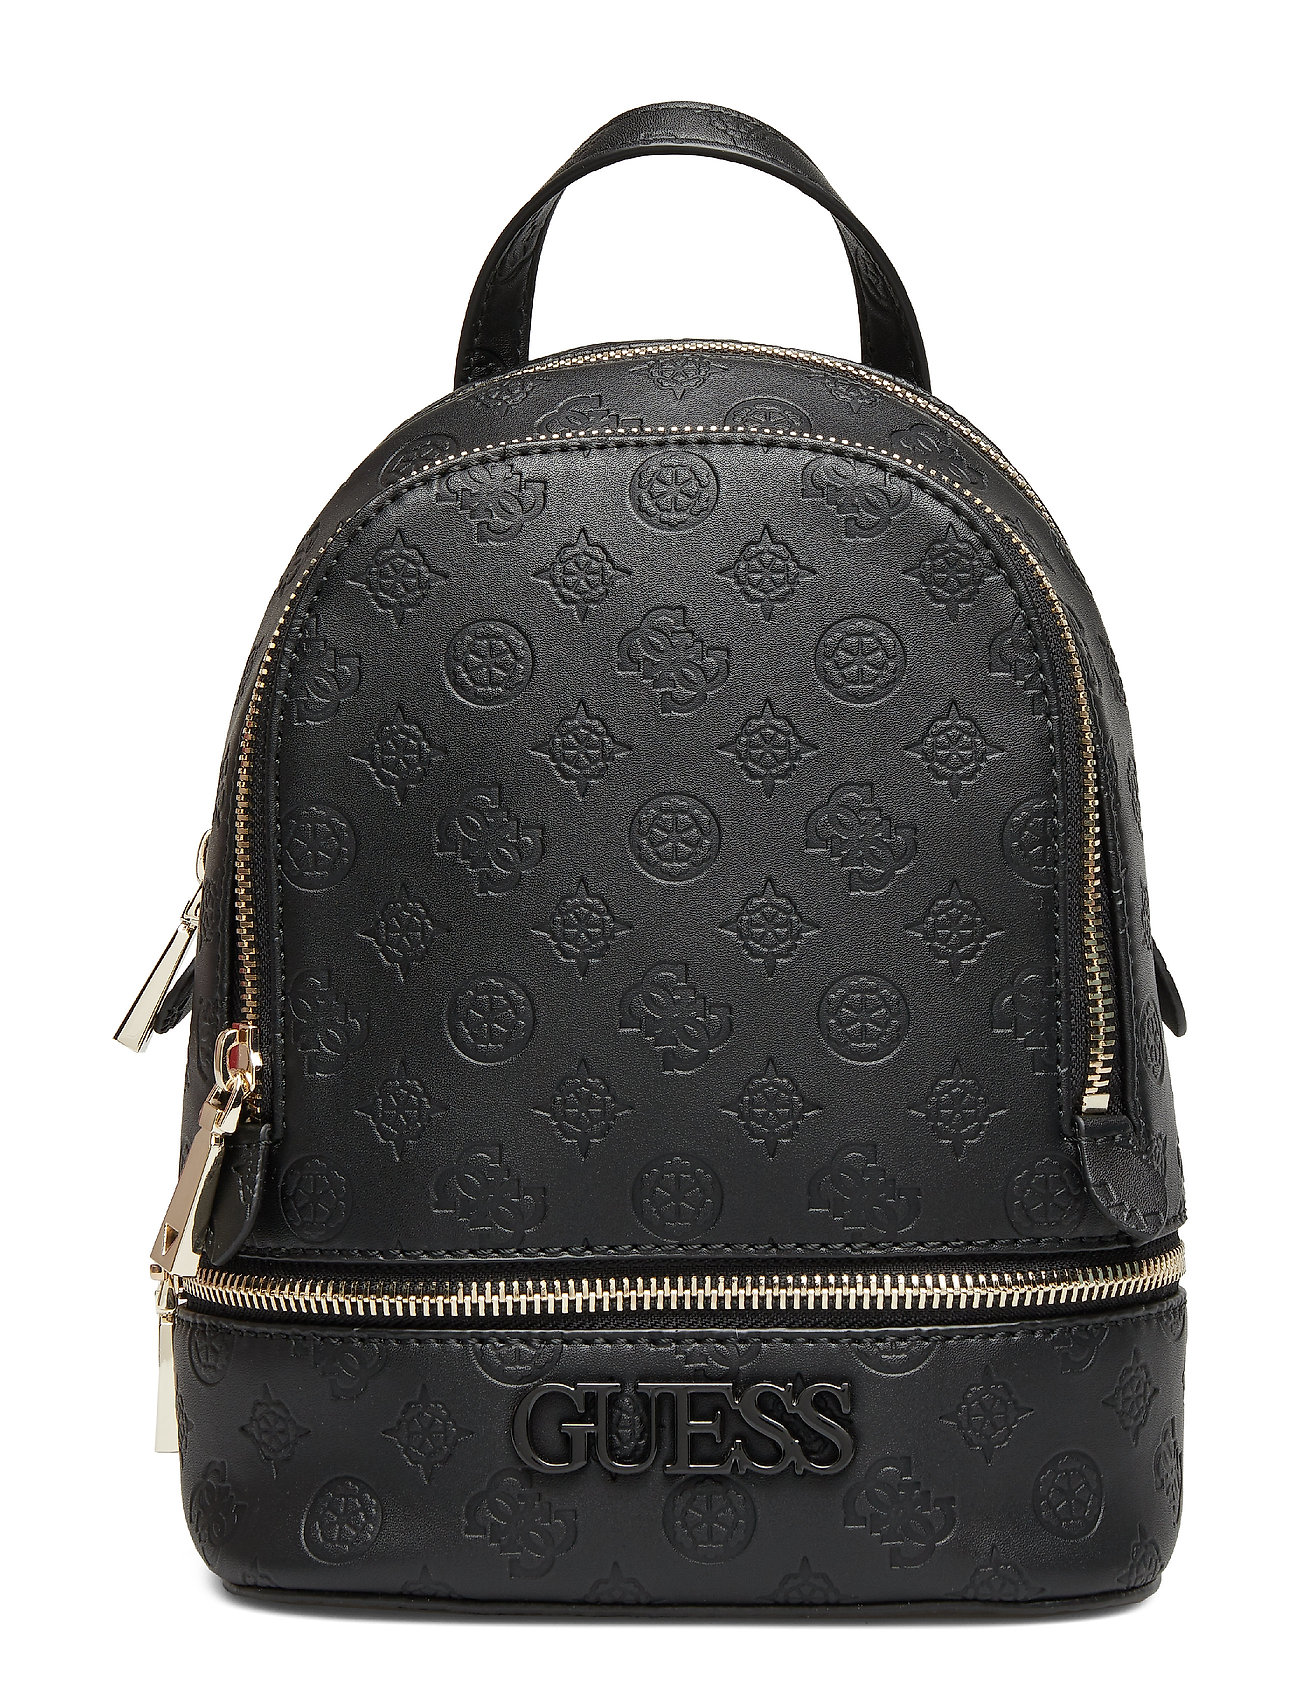 BackpackblackGuess Skye BackpackblackGuess Skye Skye Skye Skye BackpackblackGuess Skye BackpackblackGuess Skye BackpackblackGuess Skye BackpackblackGuess BackpackblackGuess mnwN80